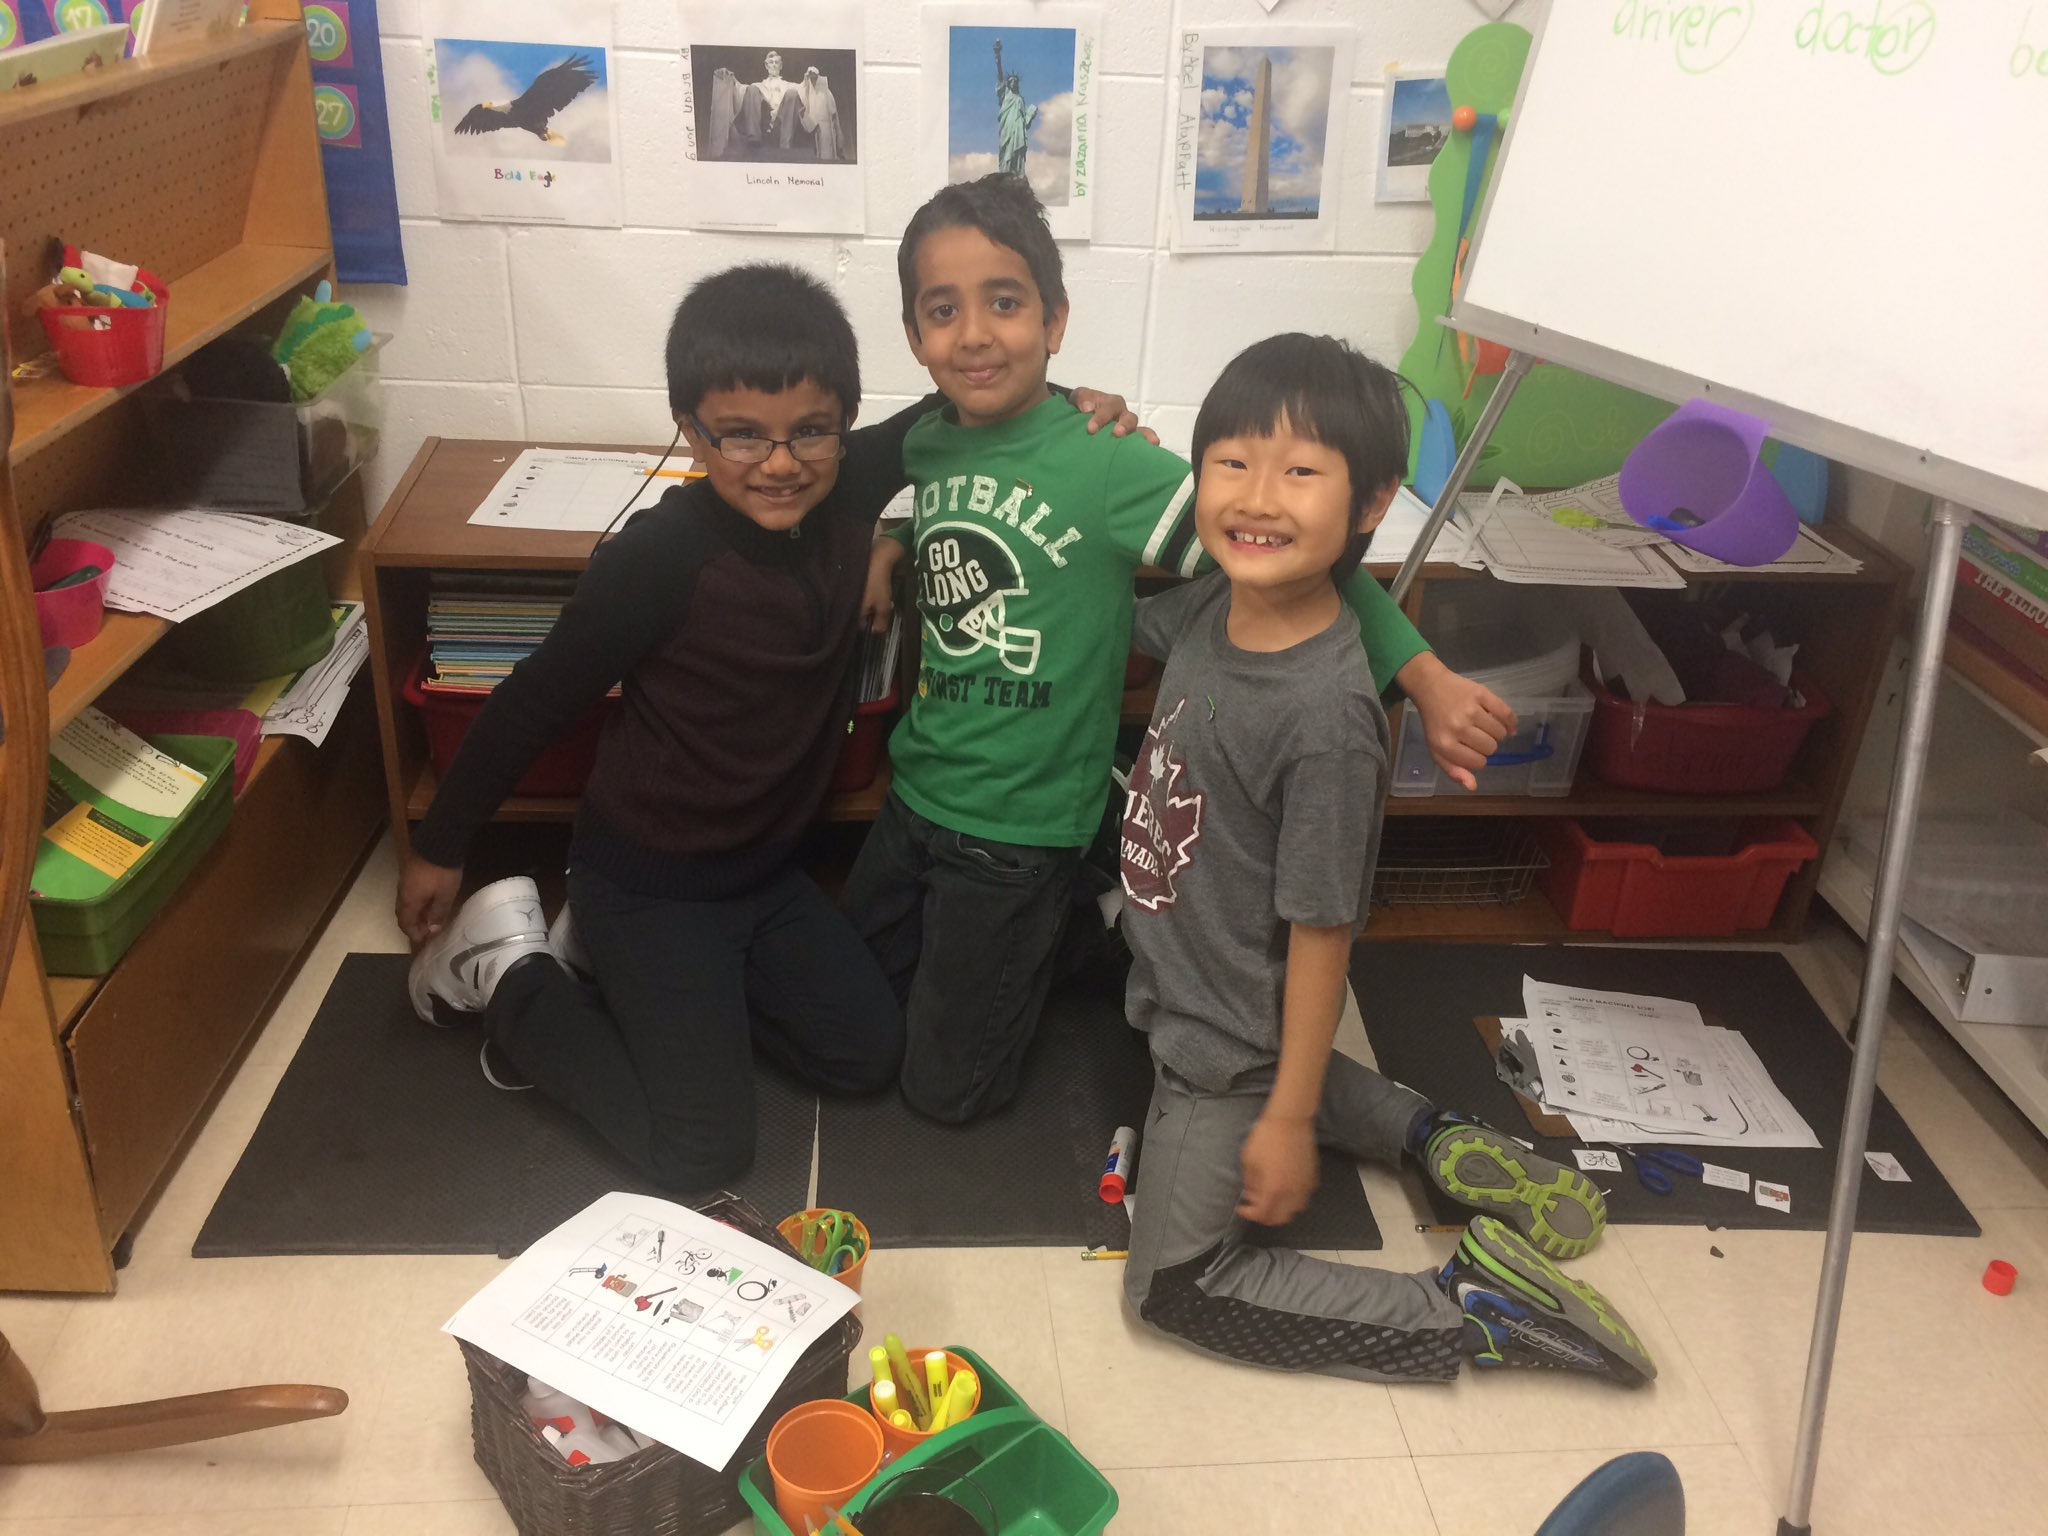 #iginspires #rtsd26learns Centers on Friday - a great review of skills learned throughout the week! https://t.co/wySEfIy15r